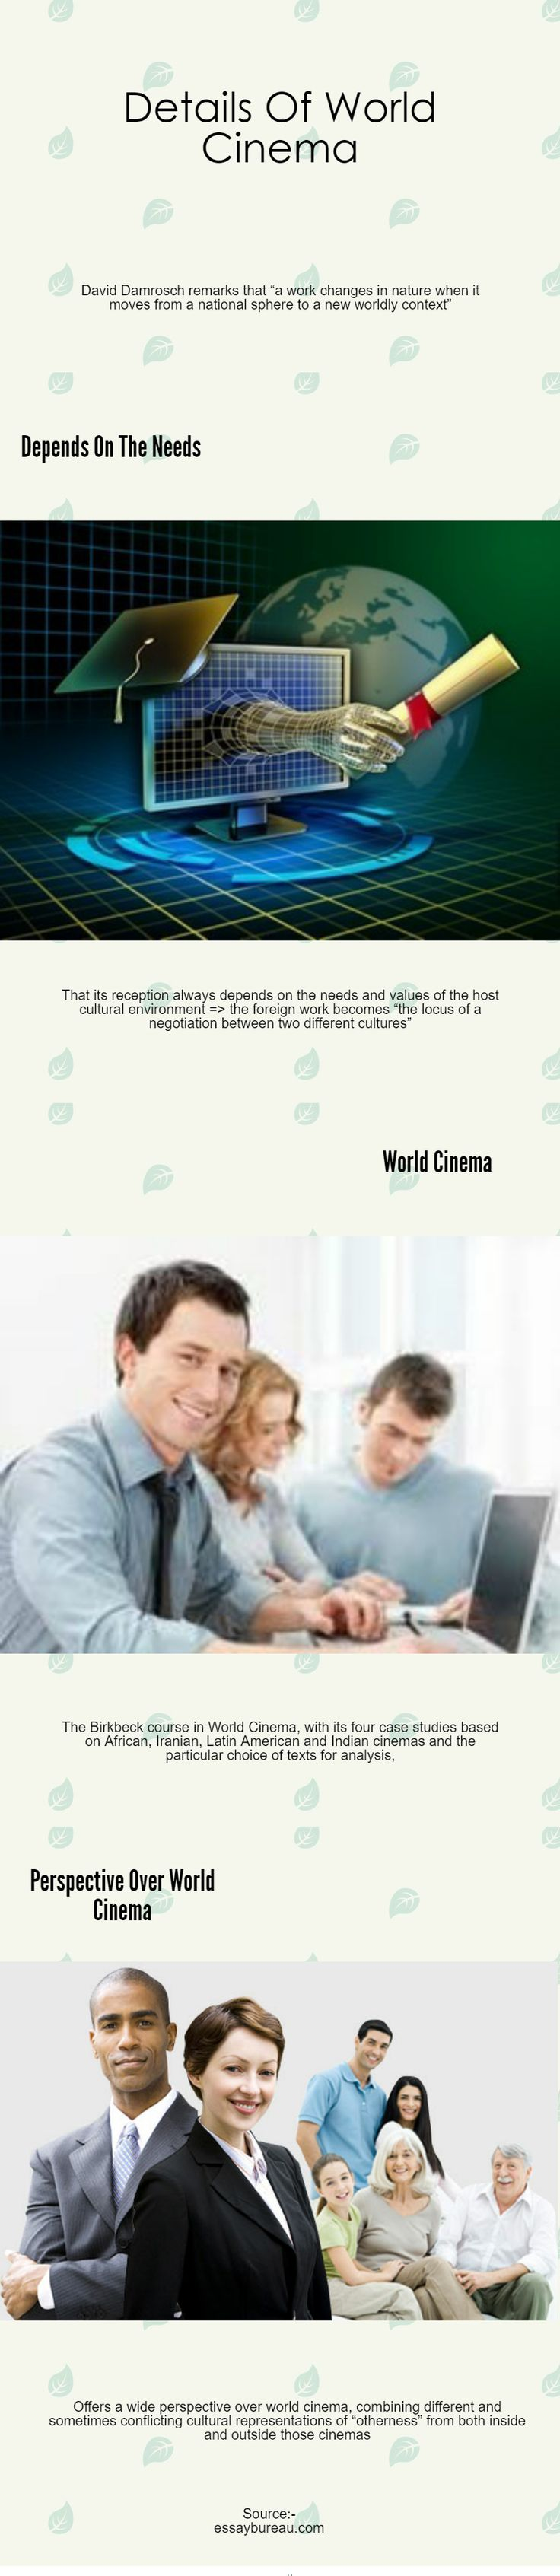 best ideas about essay writing competition details of world cinema welcome to a uk based company offering essay writing service essay writing service usa and essay writing service uk among